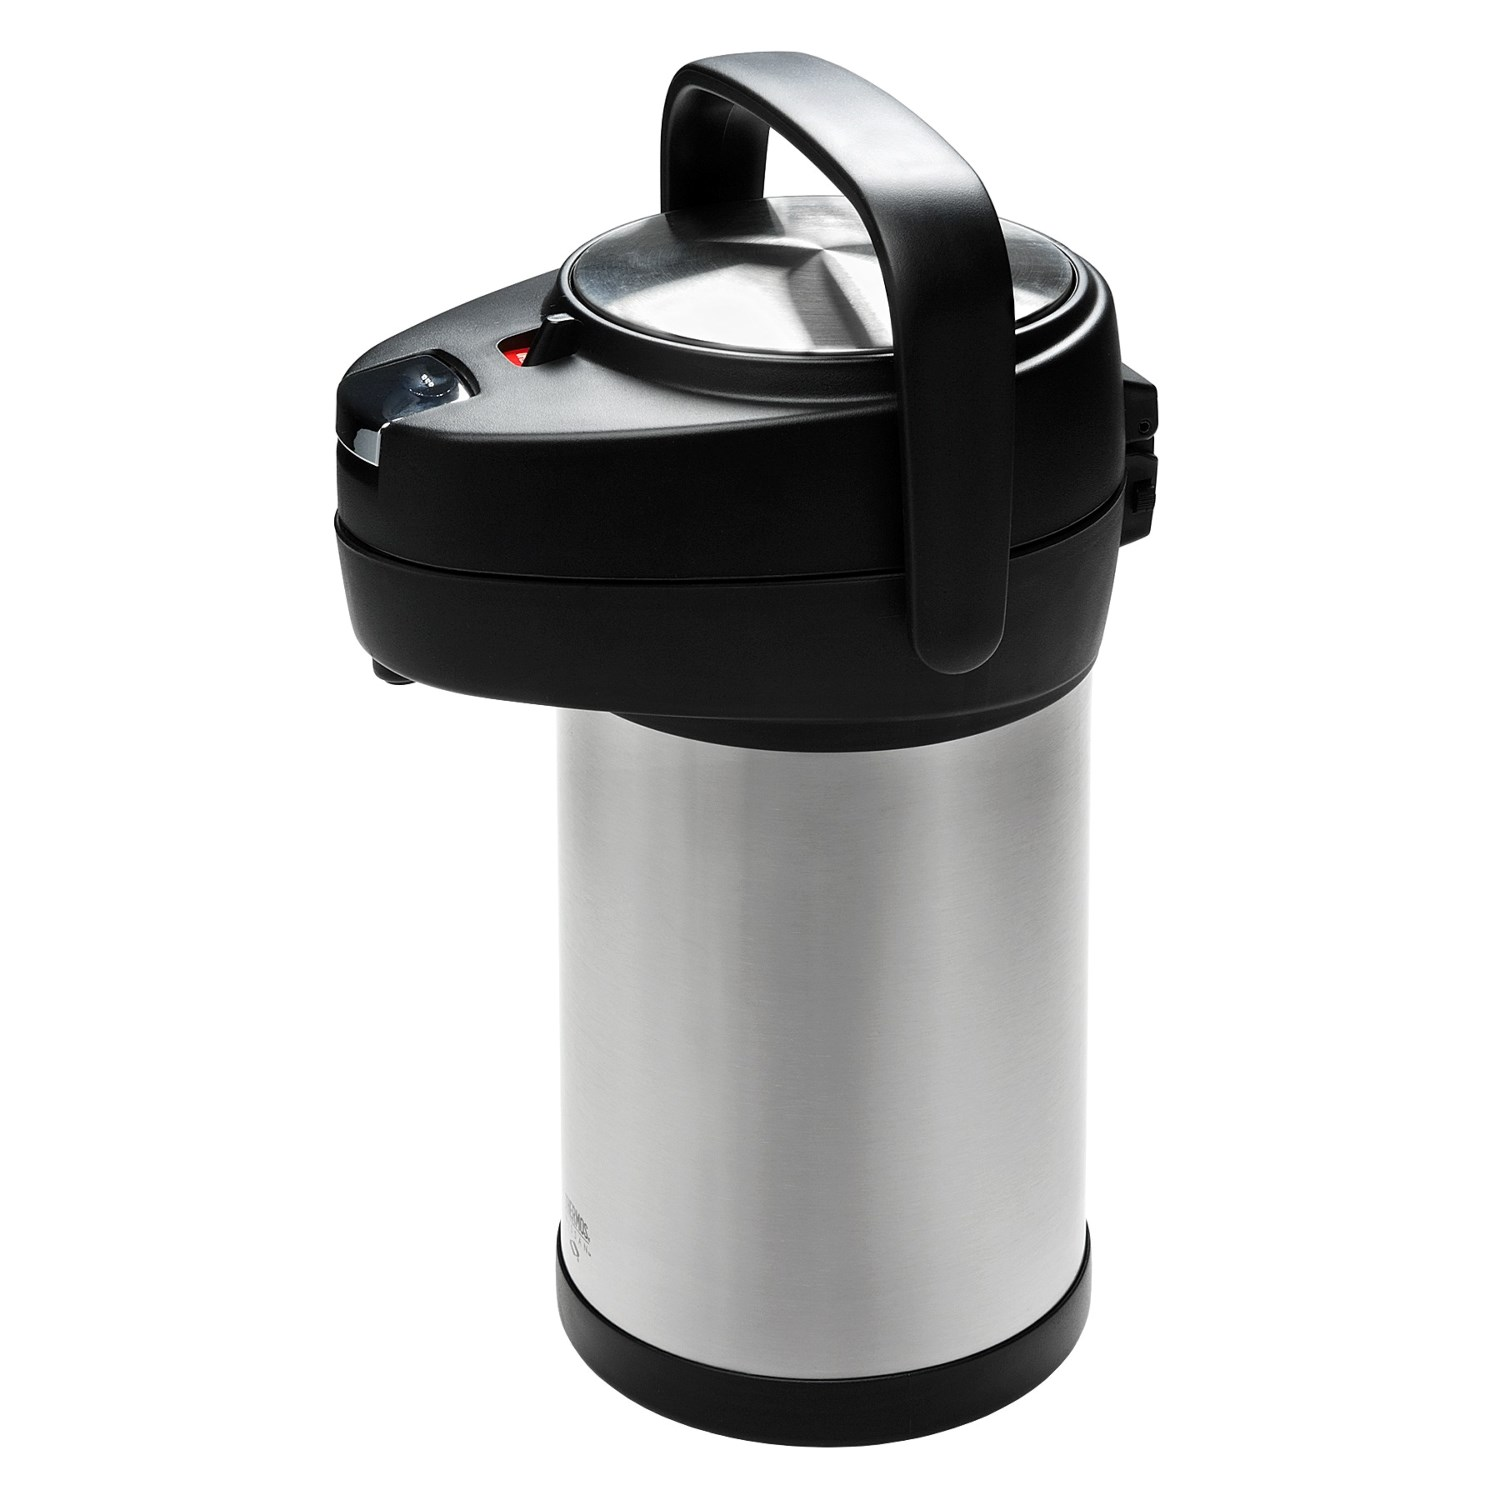 thermos nissan stainless steel pump pot 2 5 liter 3316f save 40. Black Bedroom Furniture Sets. Home Design Ideas